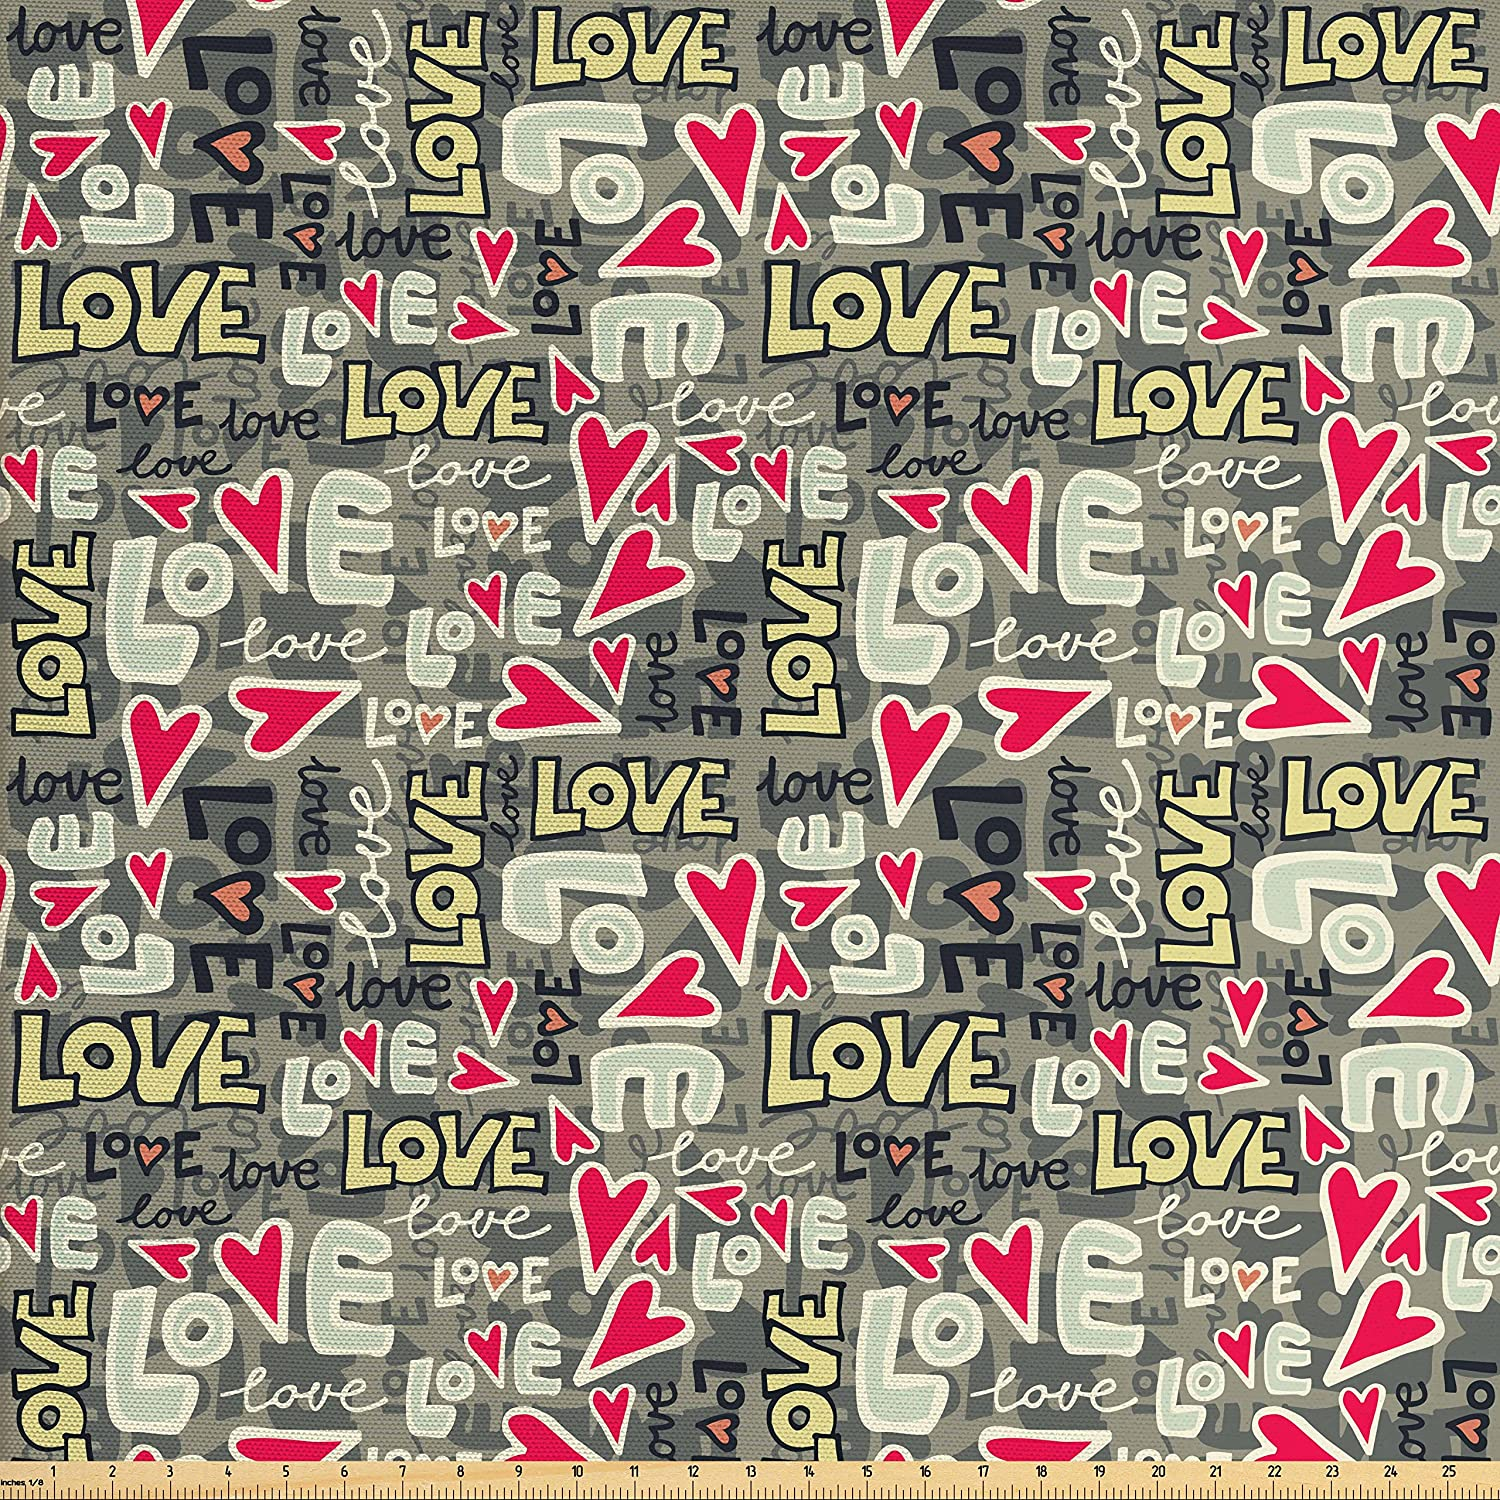 Ambesonne Love Fabric by The Yard, Retro Colors Graffiti Style Texts Design Hearts Grunge Display Street Art Inspired, Decorative Fabric for Upholstery and Home Accents, Multicolor